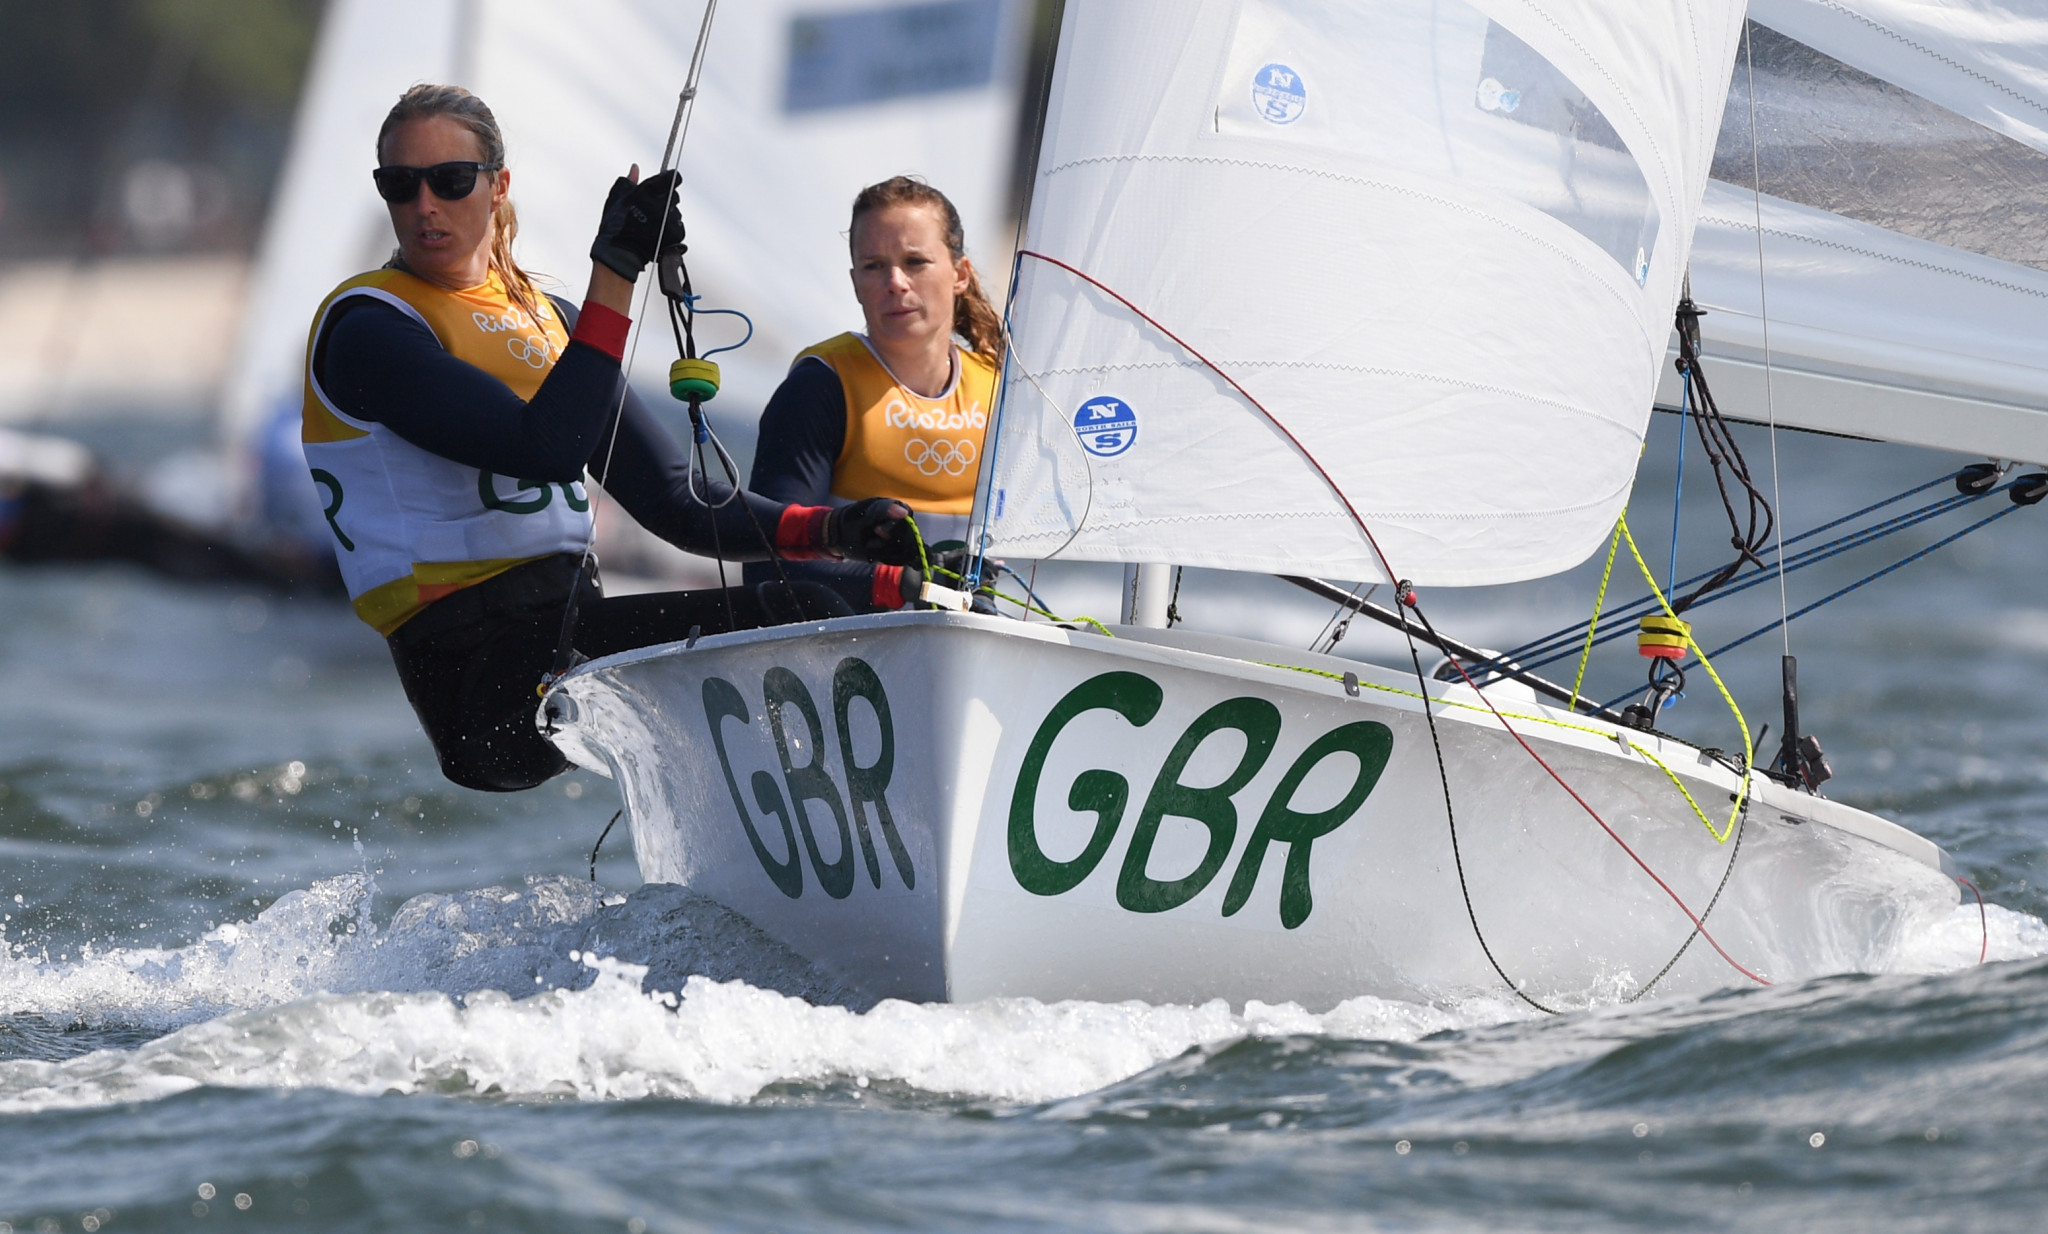 Rio 2016 Olympic champion Hannah Mills, right, and Eilidh McIntyre have a five-point advantage at the top of the women's standings at the 470 World Championships ©Getty Images